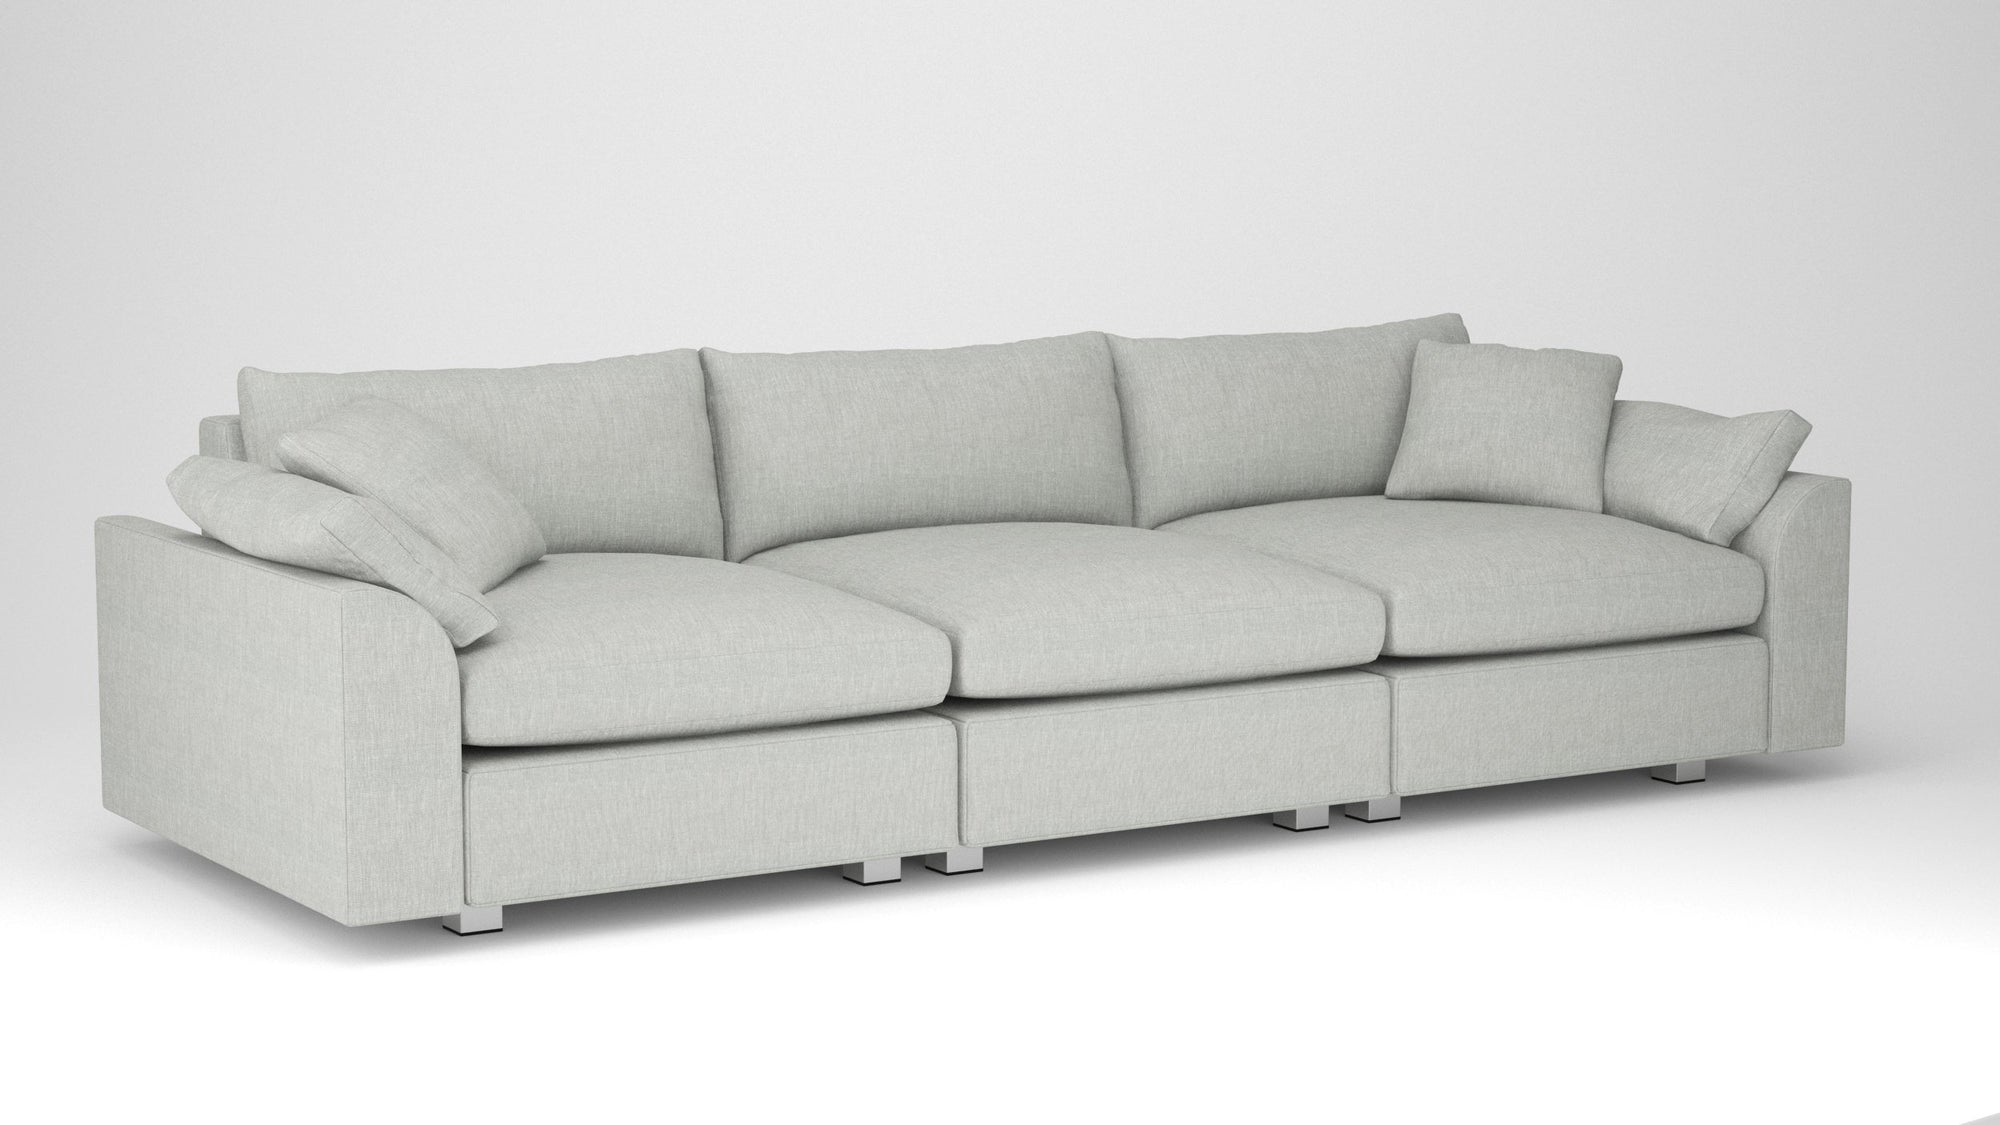 York 3-Seater Sofa